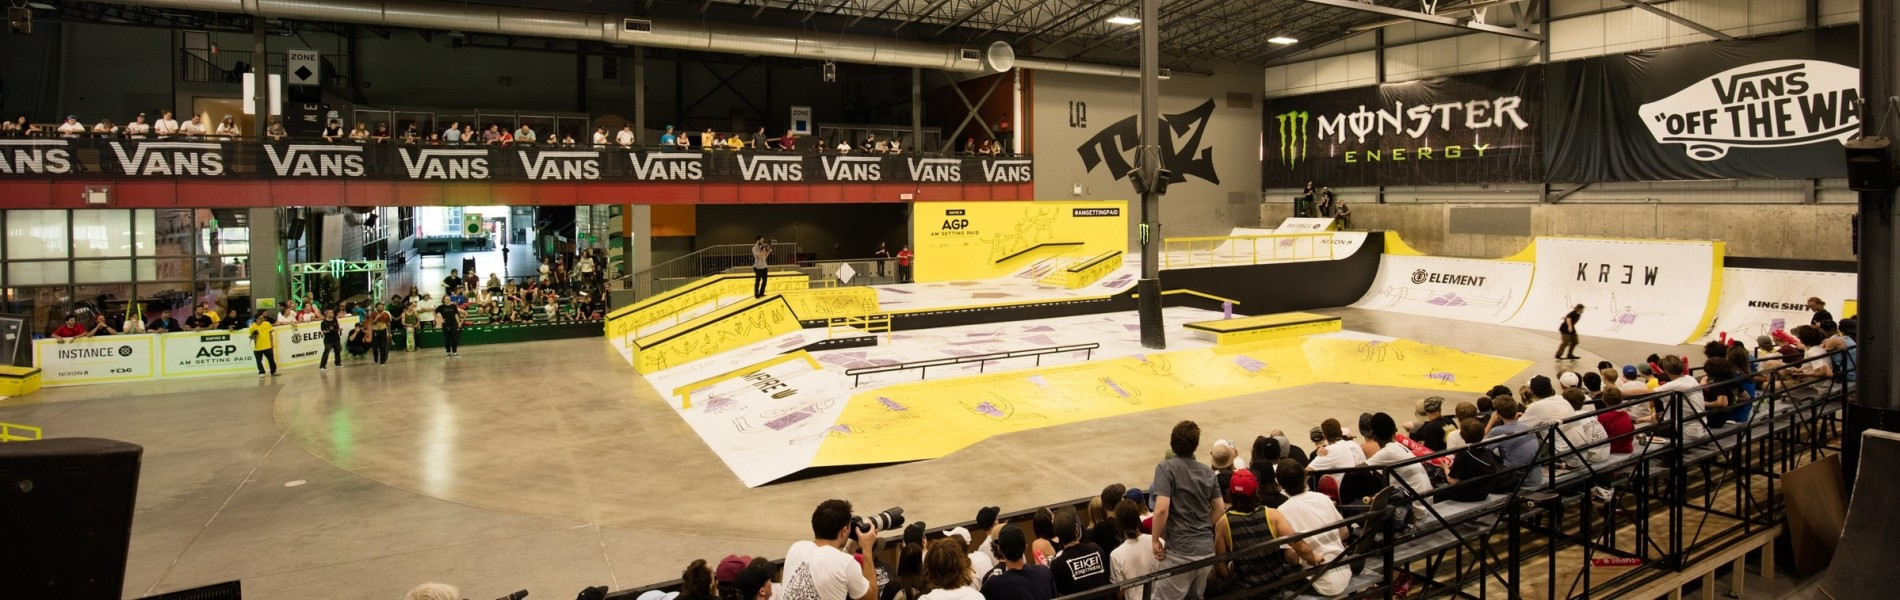 Monster Girls, Lifestyles, Ambiance and action shots from the 2016 AM Getting Paid skateboard event.